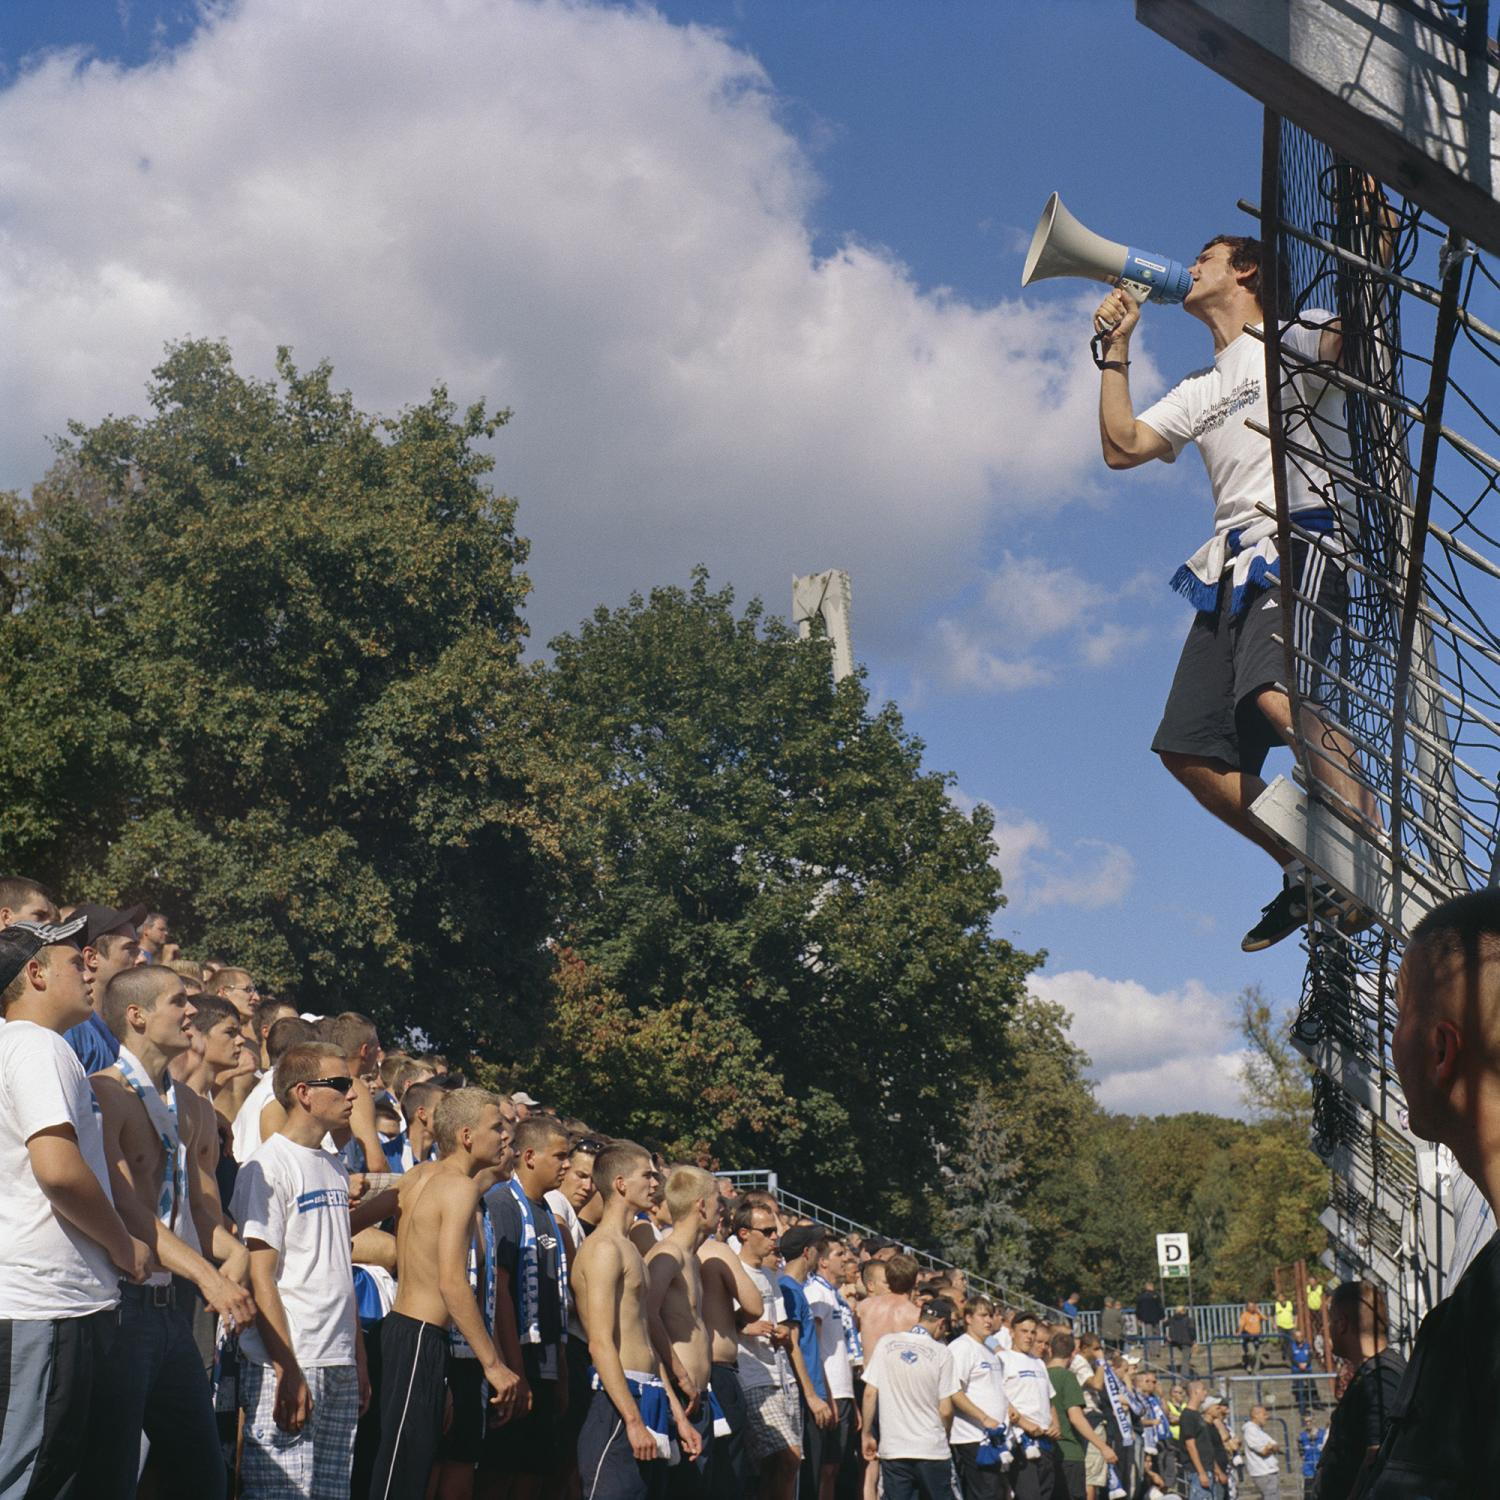 The head of the Ultras group sings on as the supporters follow, during a game of 1. FC Magdeburg in Babelsberg.